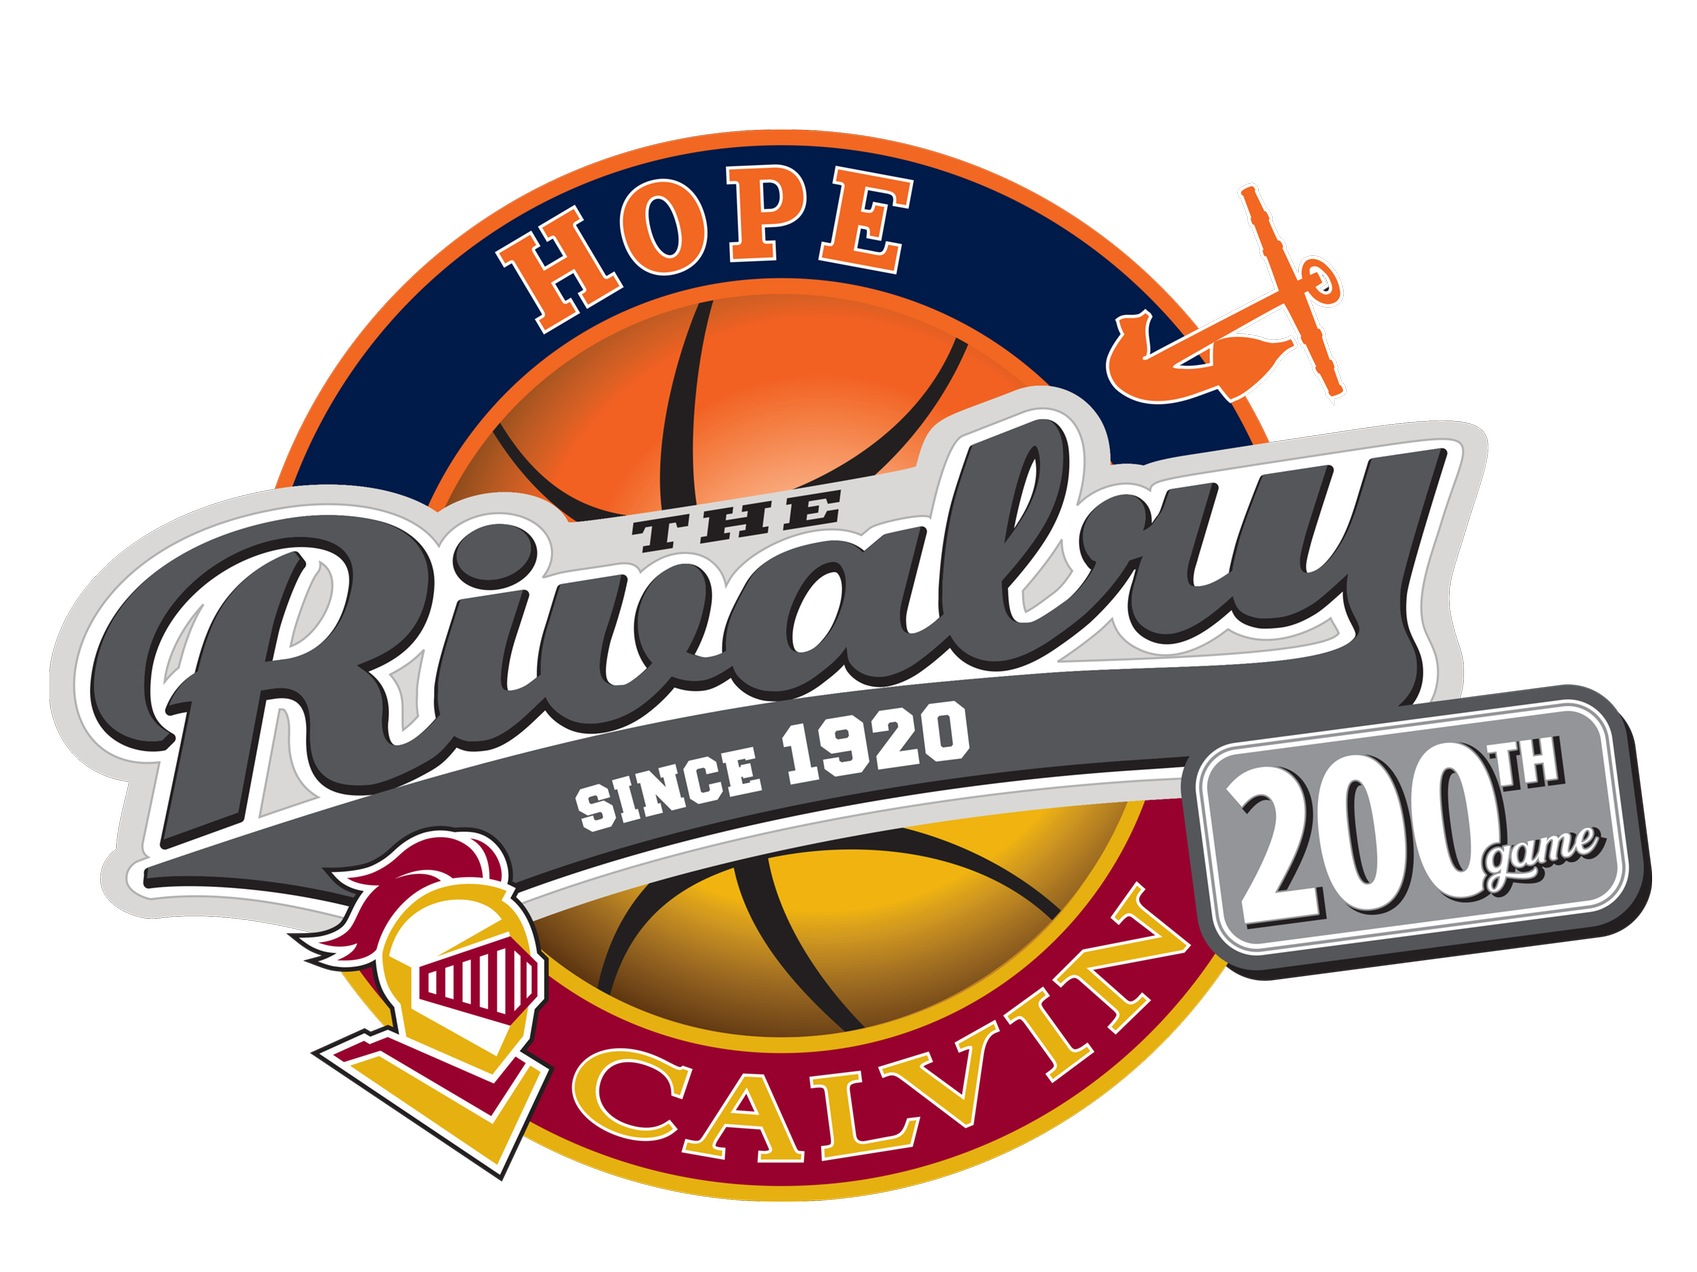 Hope Calvin Rivalry logo